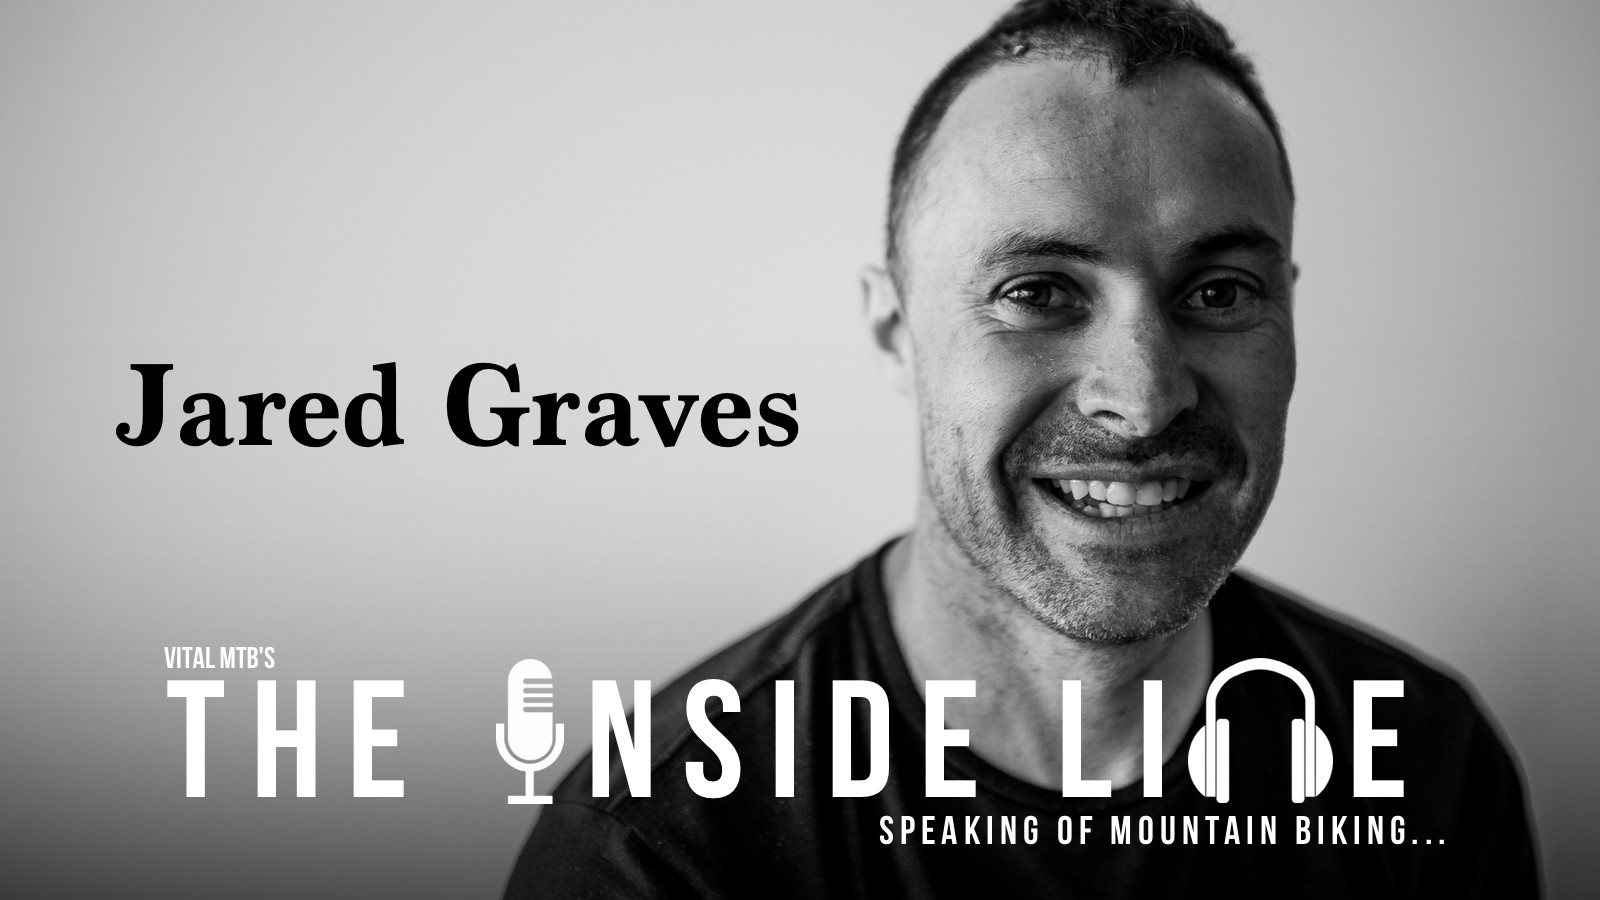 The Inside Line Podcast - Jared Graves